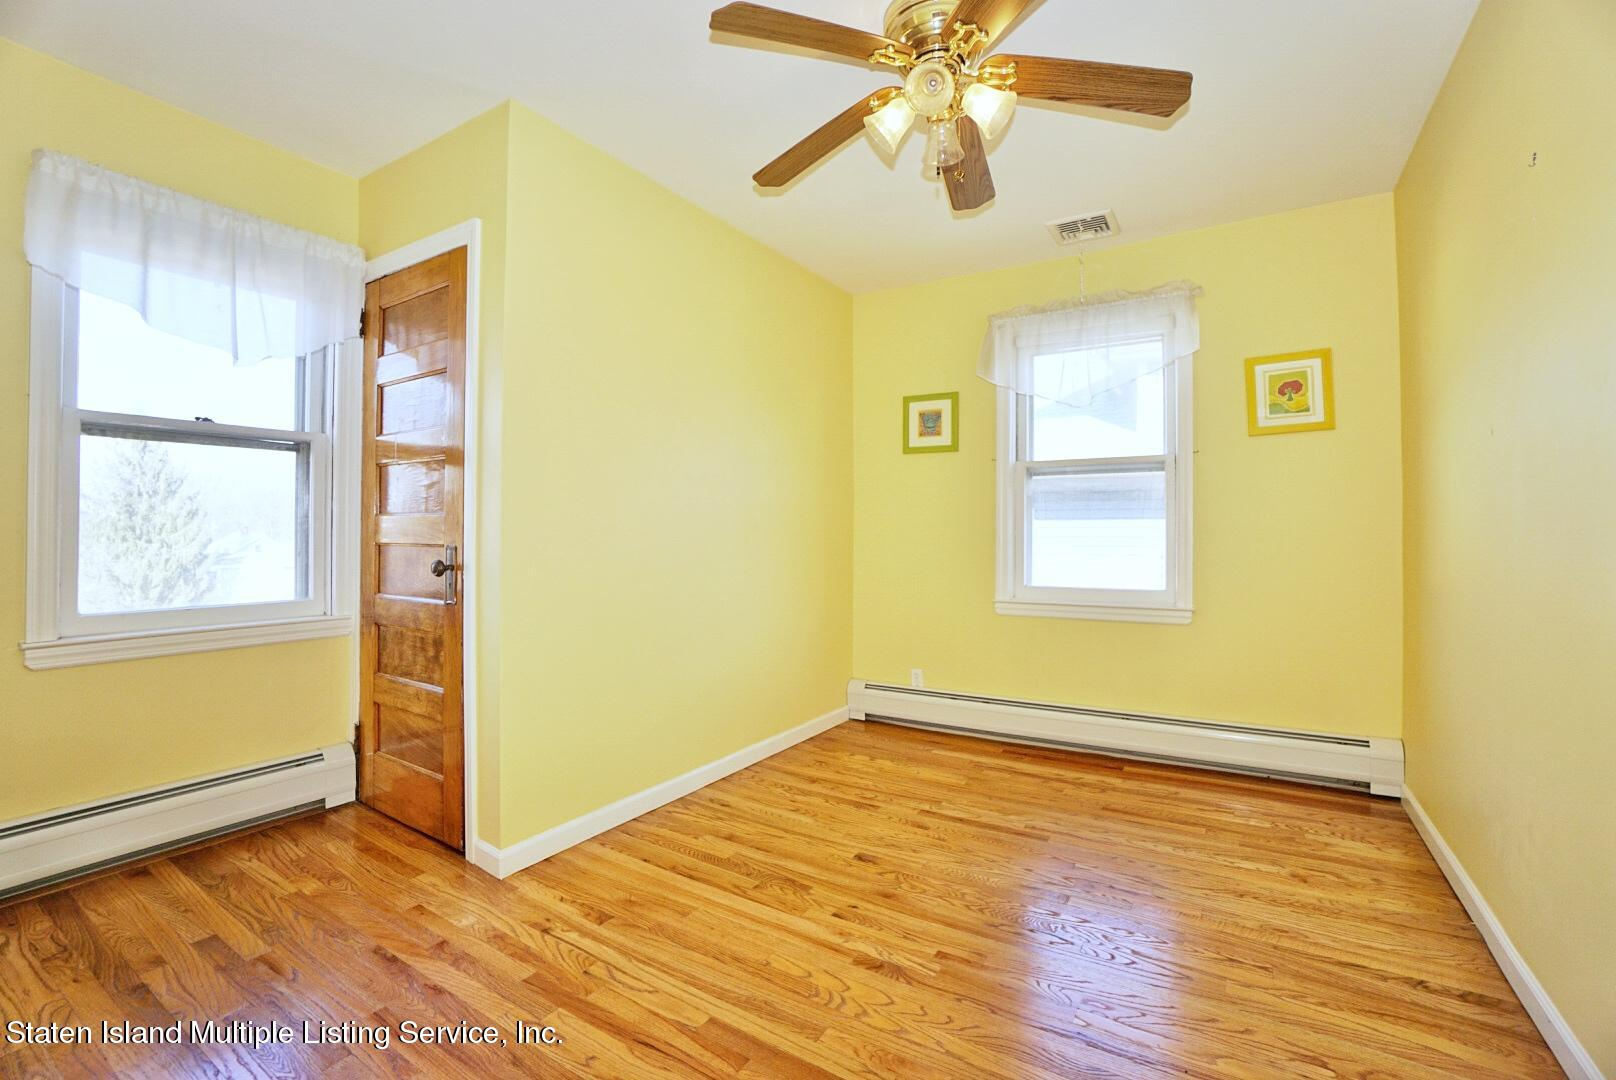 Single Family - Detached 97 Knox Place  Staten Island, NY 10314, MLS-1143147-14